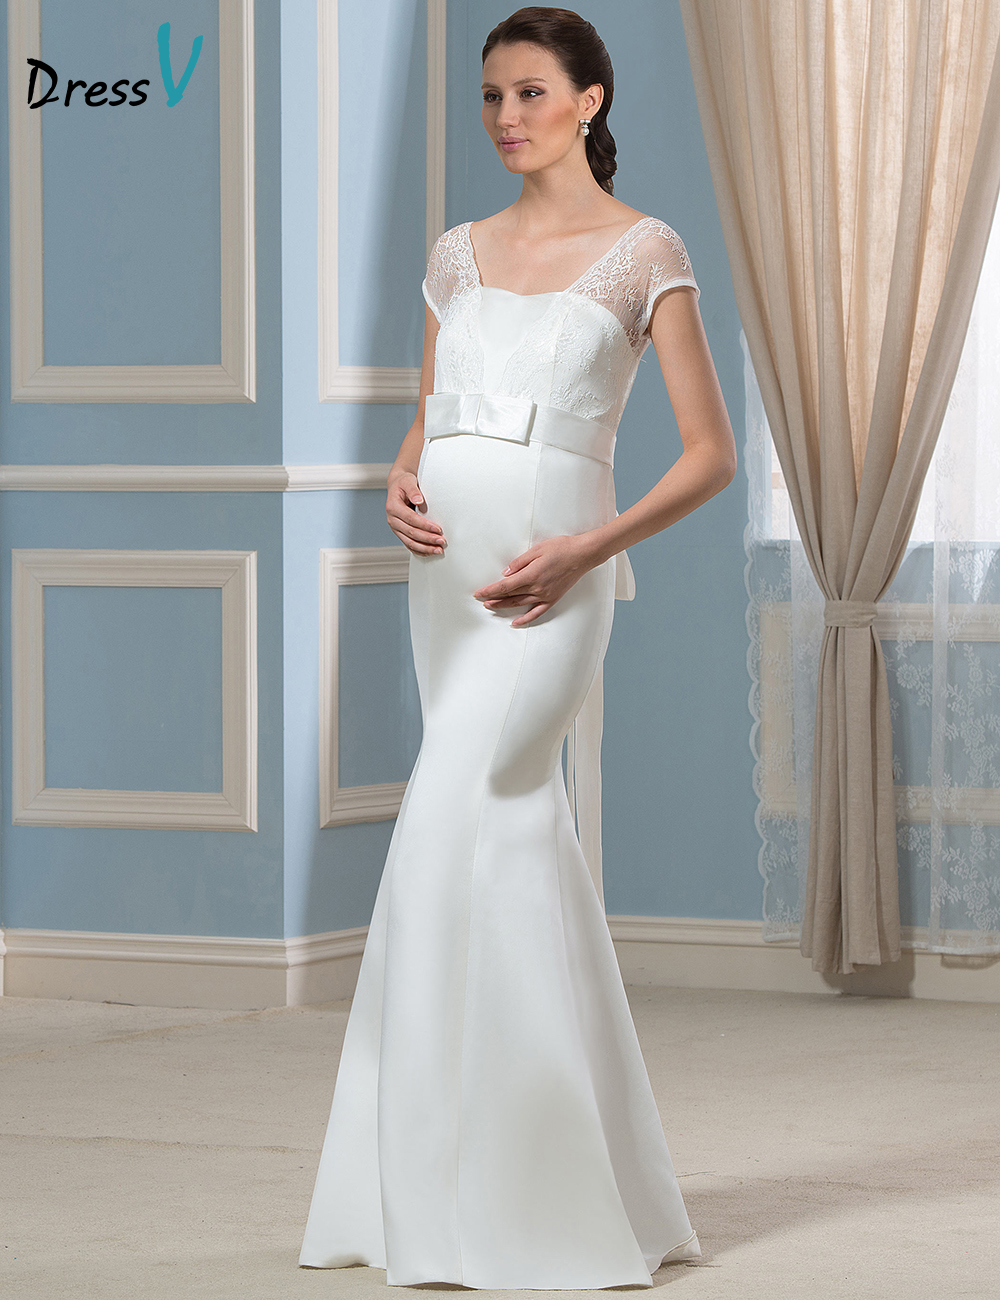 Unique Wedding Dresses Pregnant Brides Frieze - All Wedding Dresses ...